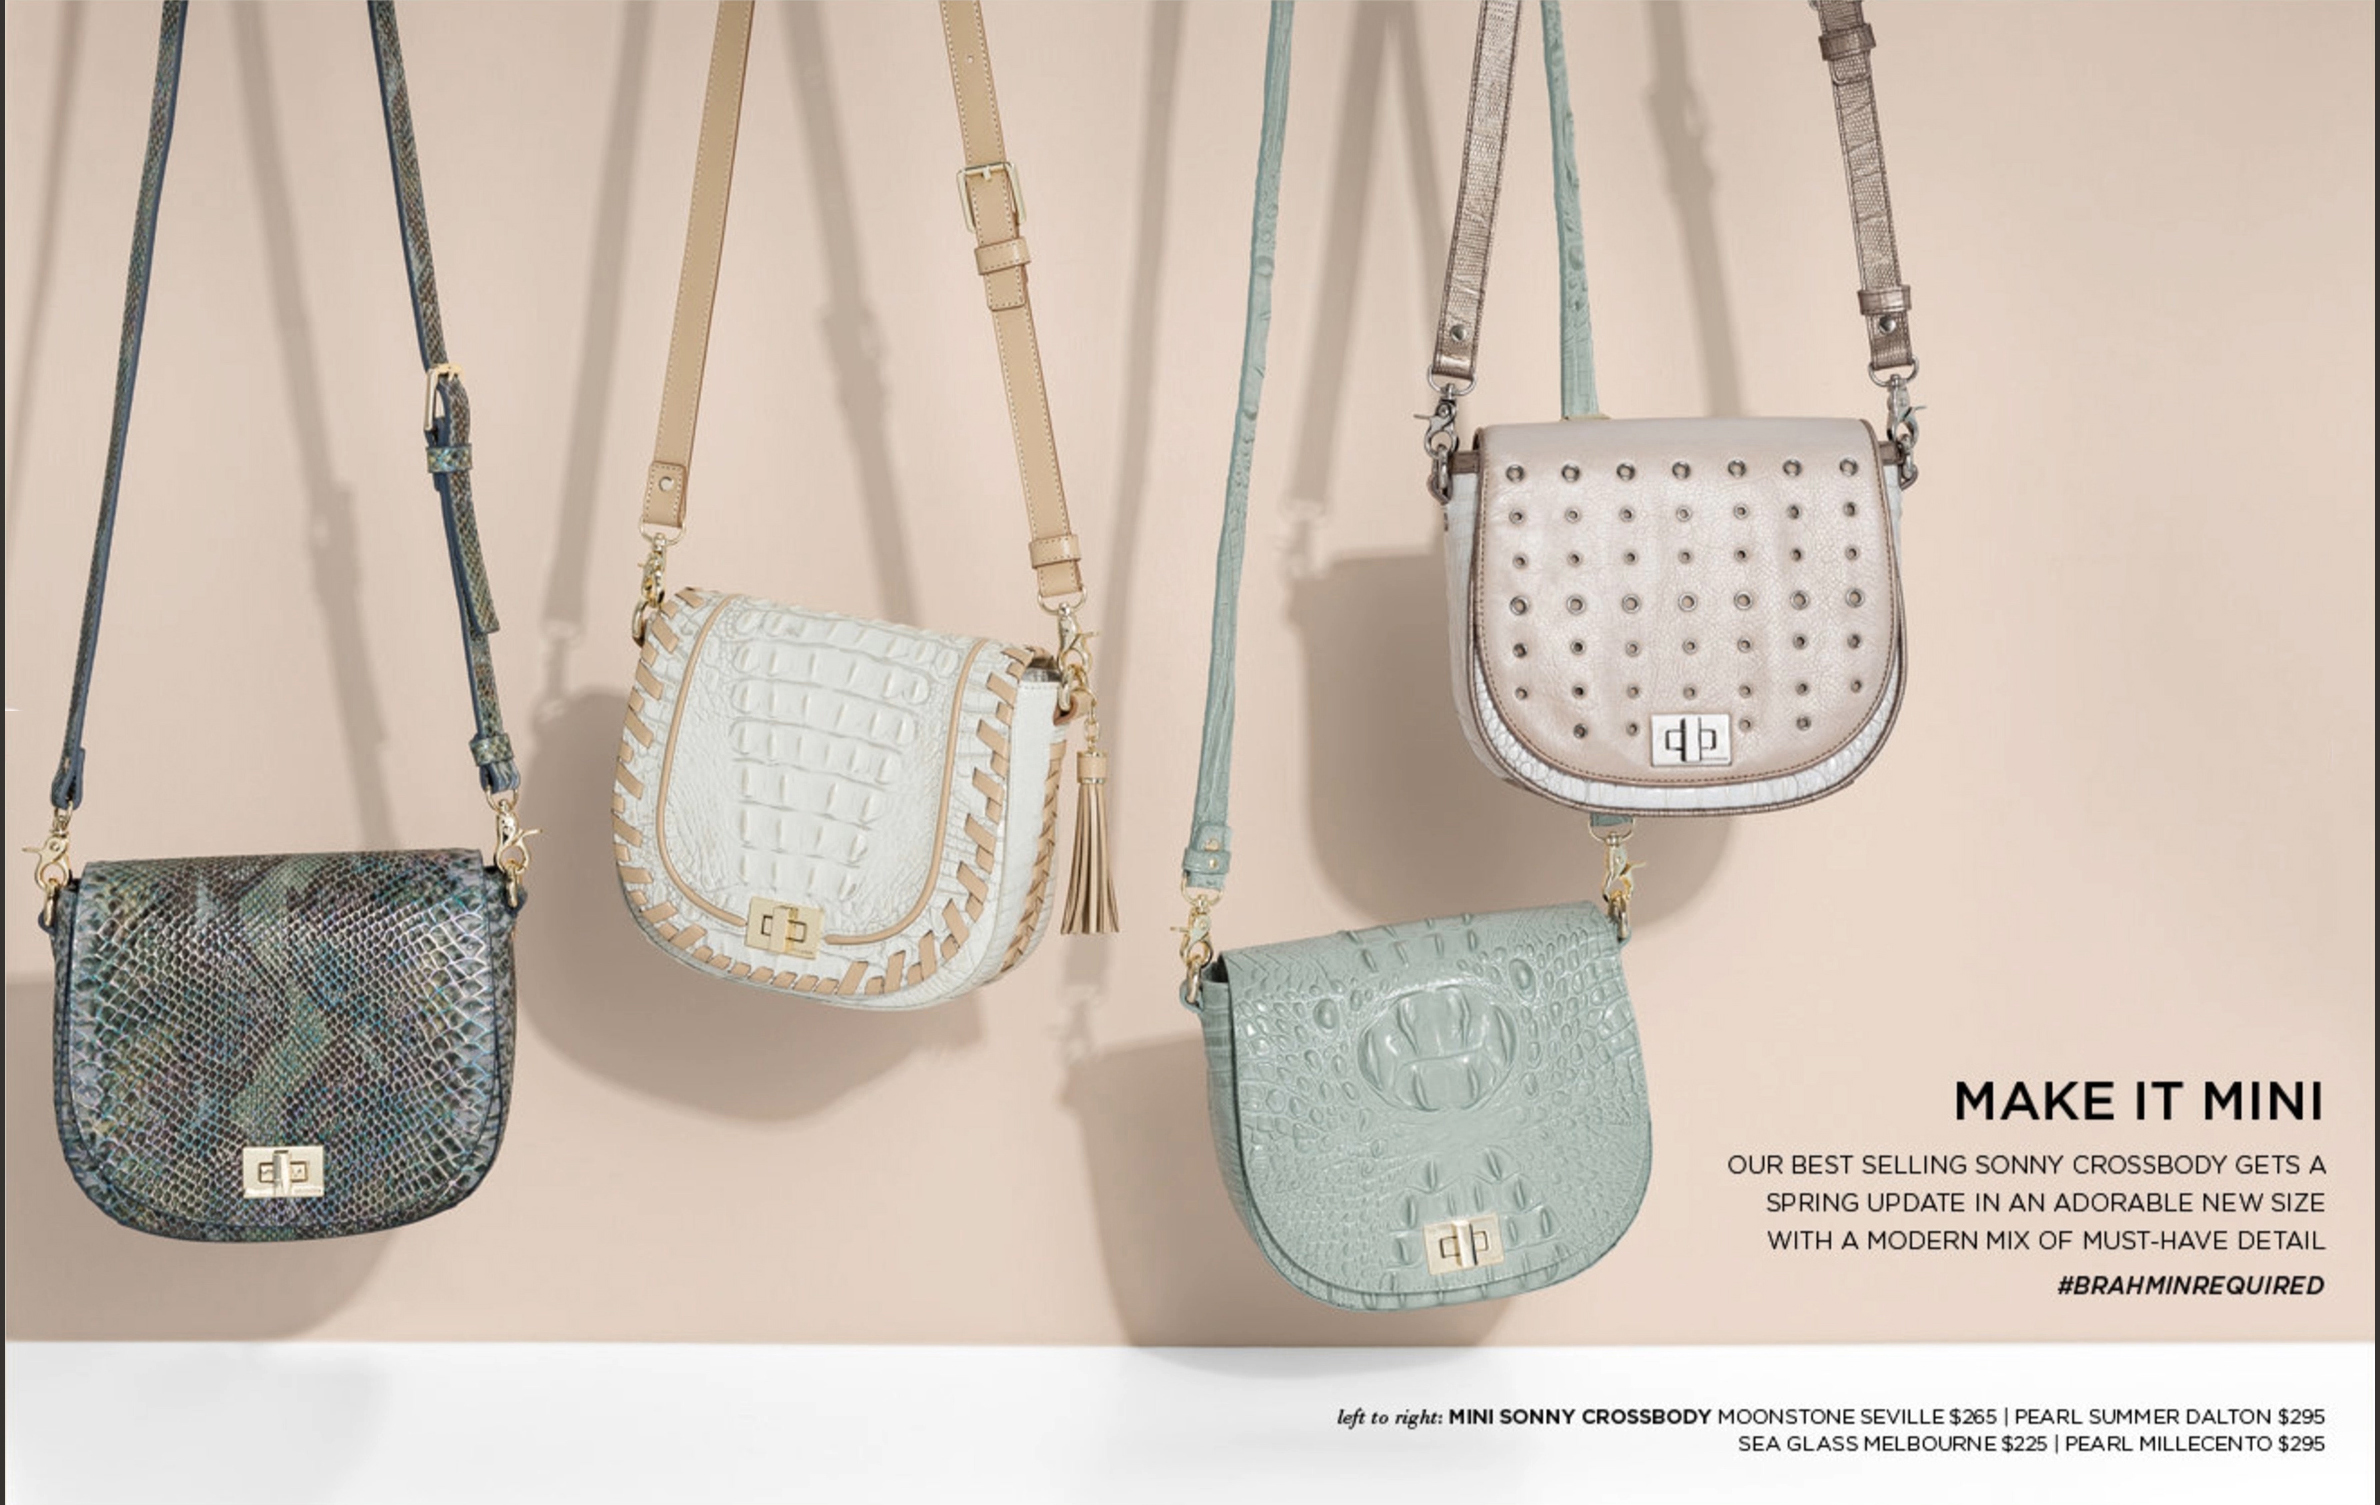 Brahmin_Summer Catalog_Video_11.jpg